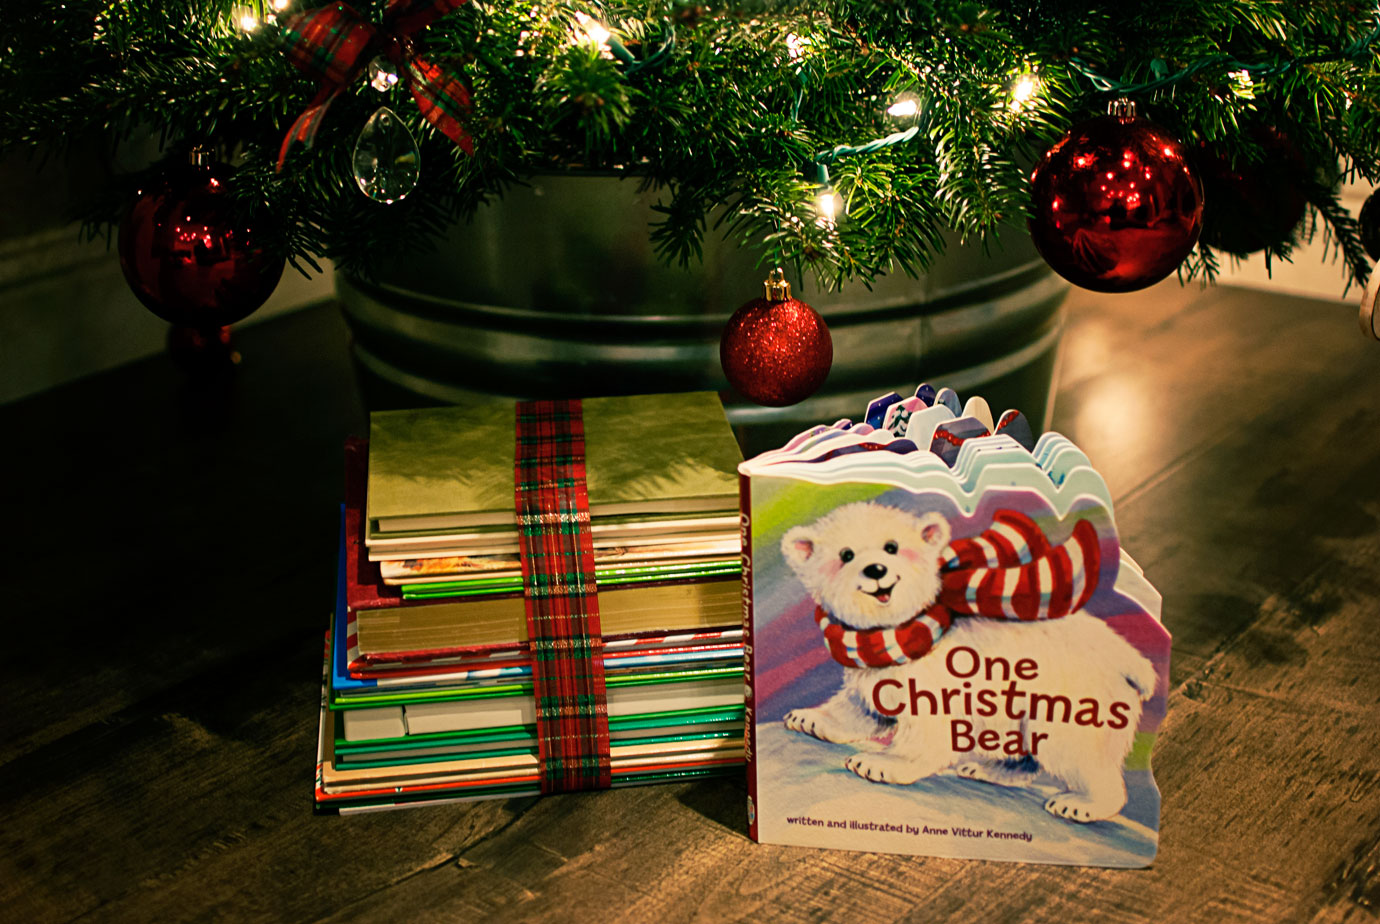 one christmas bear by anne vittur kennedy a sweet christmas story book for toddlers and preschool - Christmas Story For Toddlers